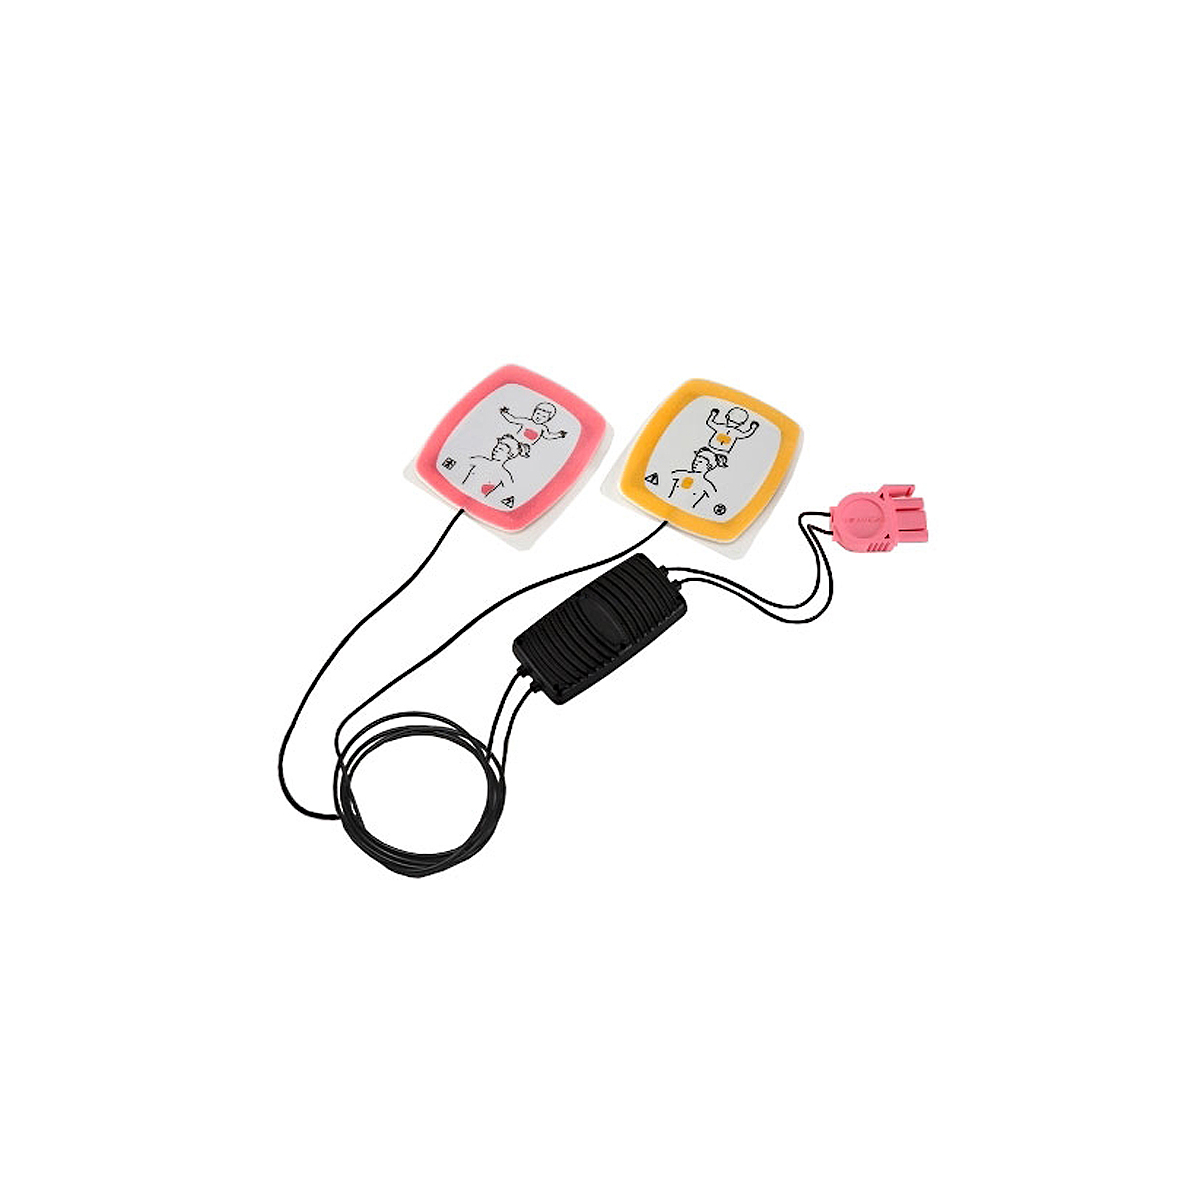 Physio-Control Lifepak® Replacement Infant/Child Reduced Energy Electrodes